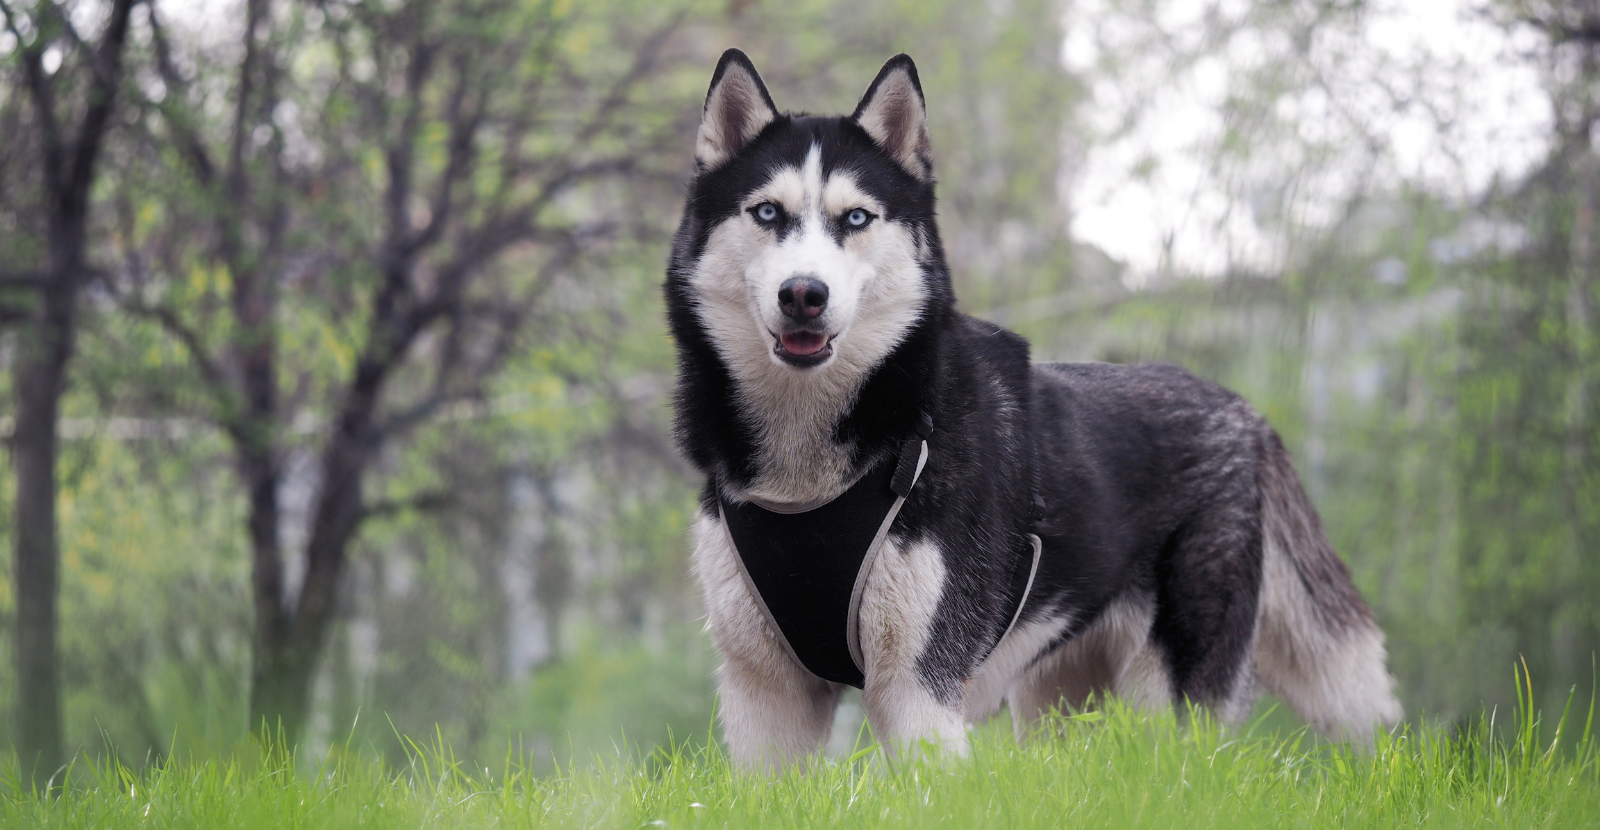 Strikingly Beautiful Huskies Are at Risk for Arthritis